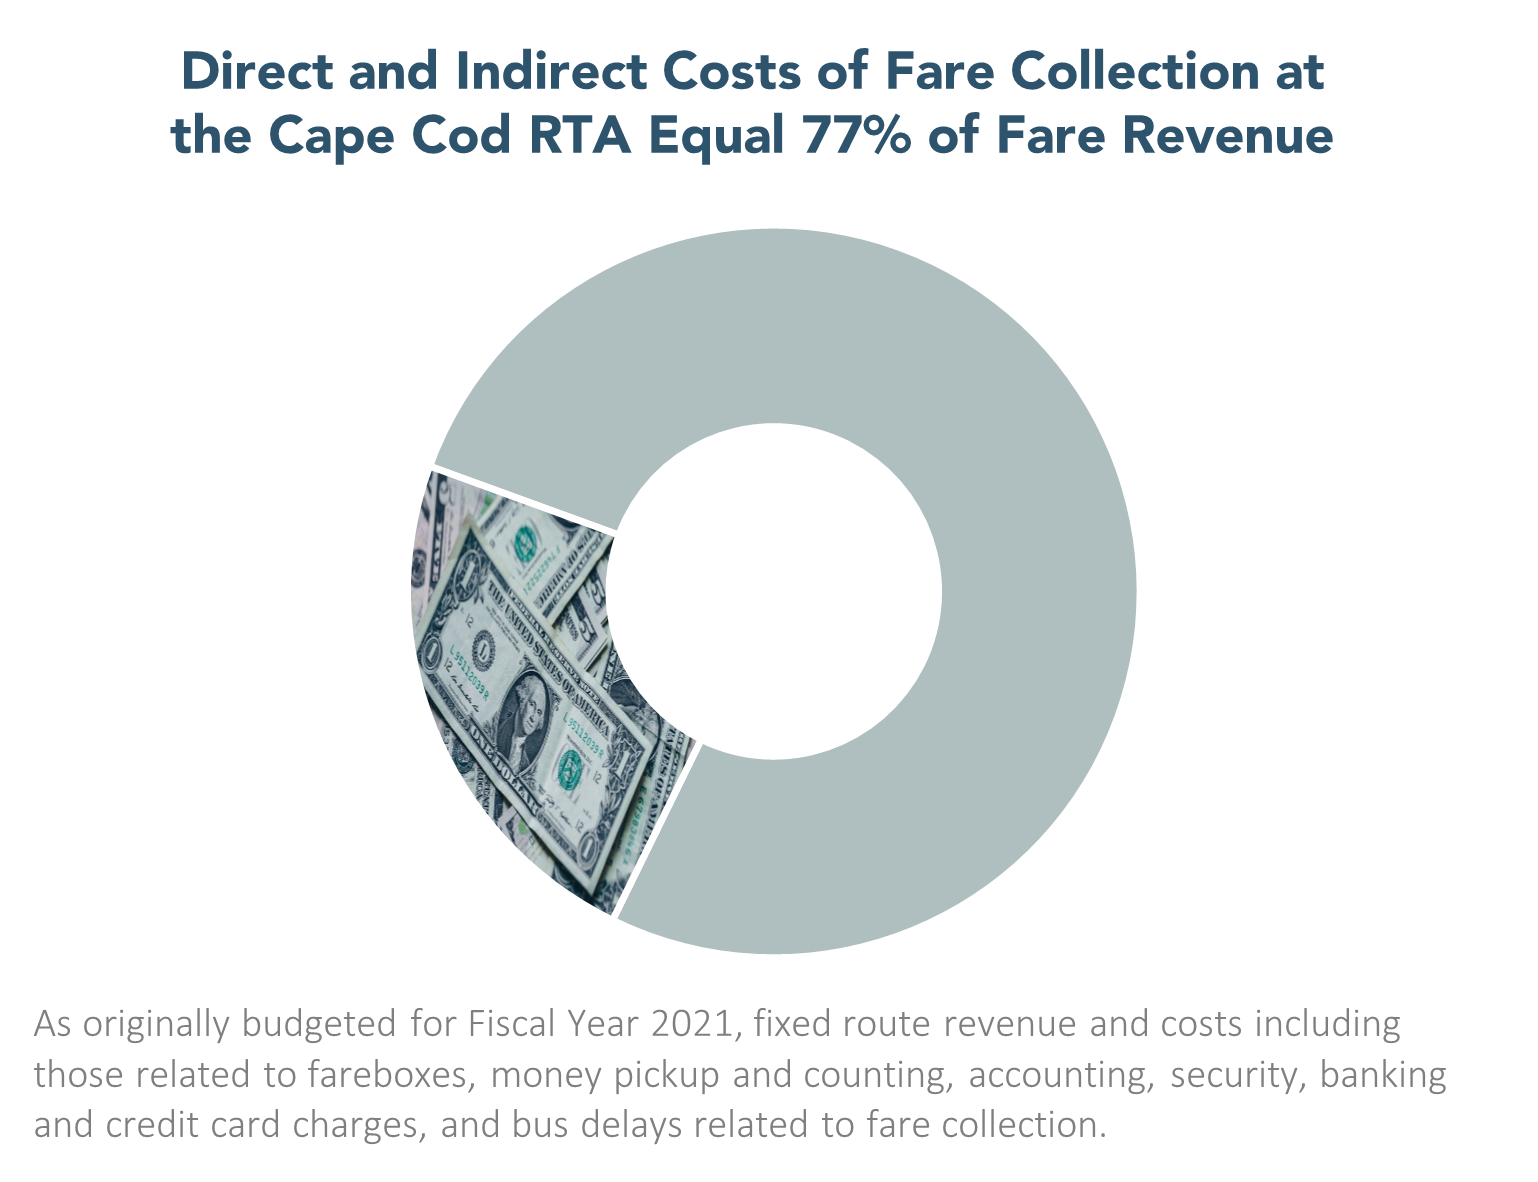 Direct and Indirect Costs of Fare Collection